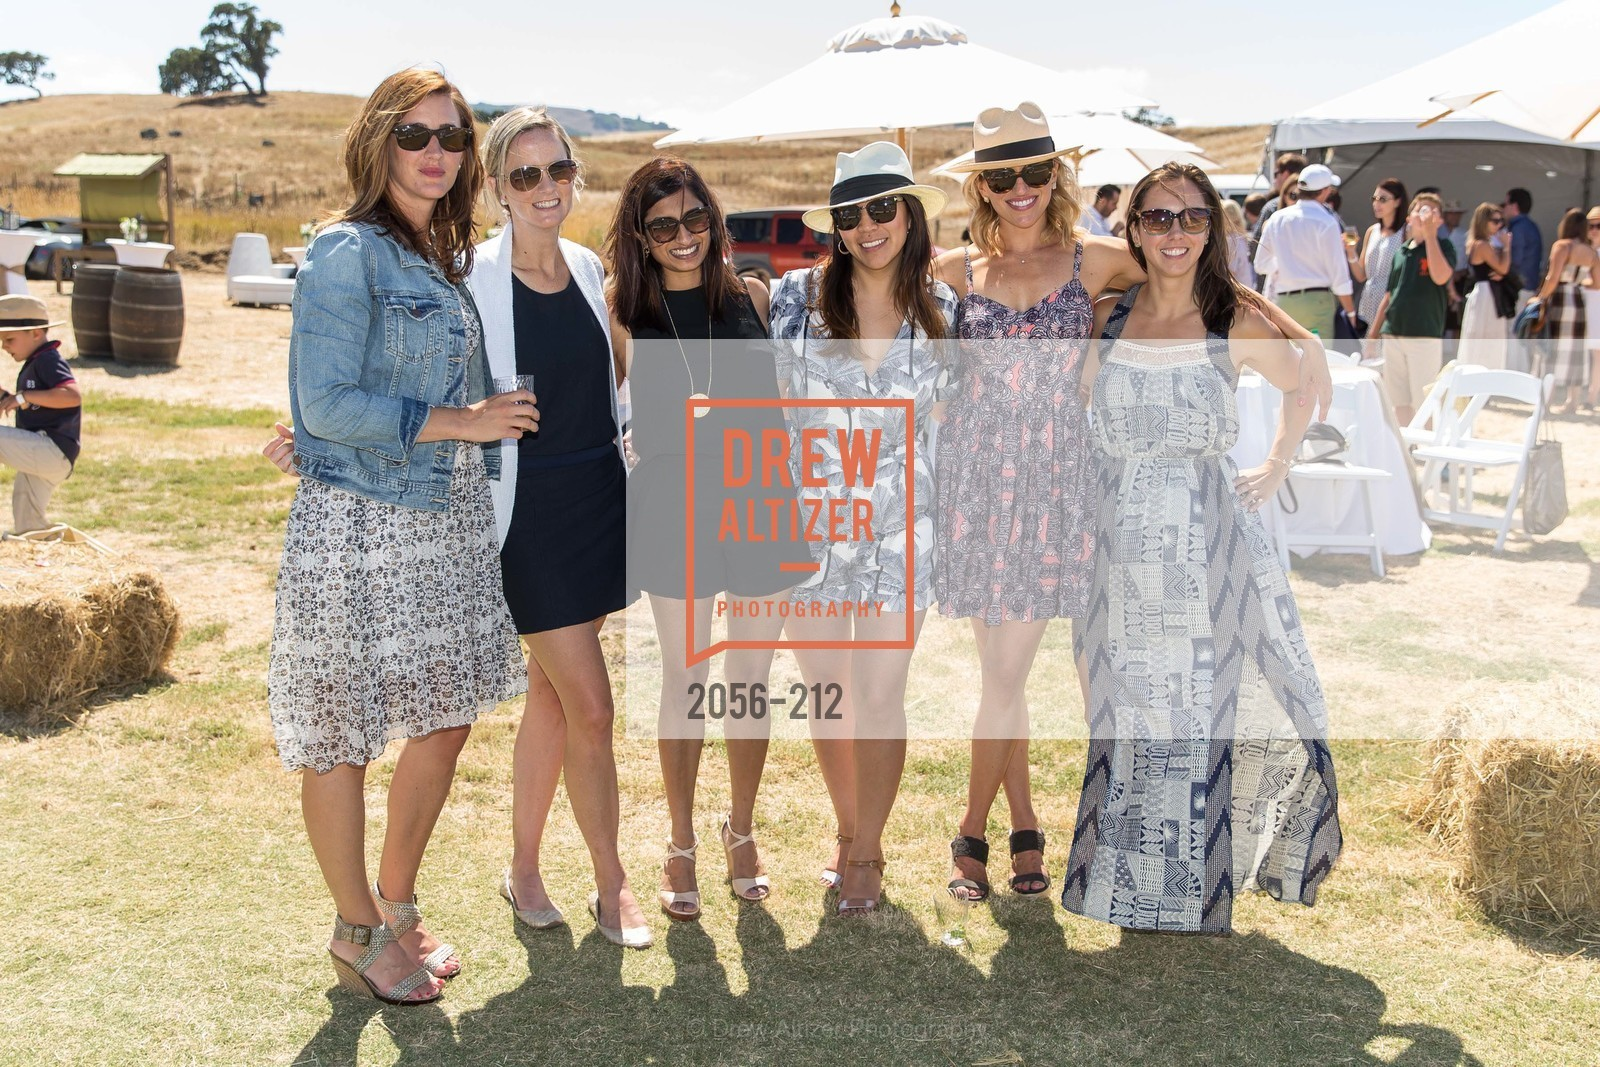 Kristen Ringer, Alexandra Doan, Rajani Rao, Jen Ryu, Ashley Ganz, Jarka Tkacova, Susie Chappell, Stick & Ball Oyster Cup Polo Tournament, Cerro Pampa Polo Club, July 25th, 2015,Drew Altizer, Drew Altizer Photography, full-service agency, private events, San Francisco photographer, photographer california